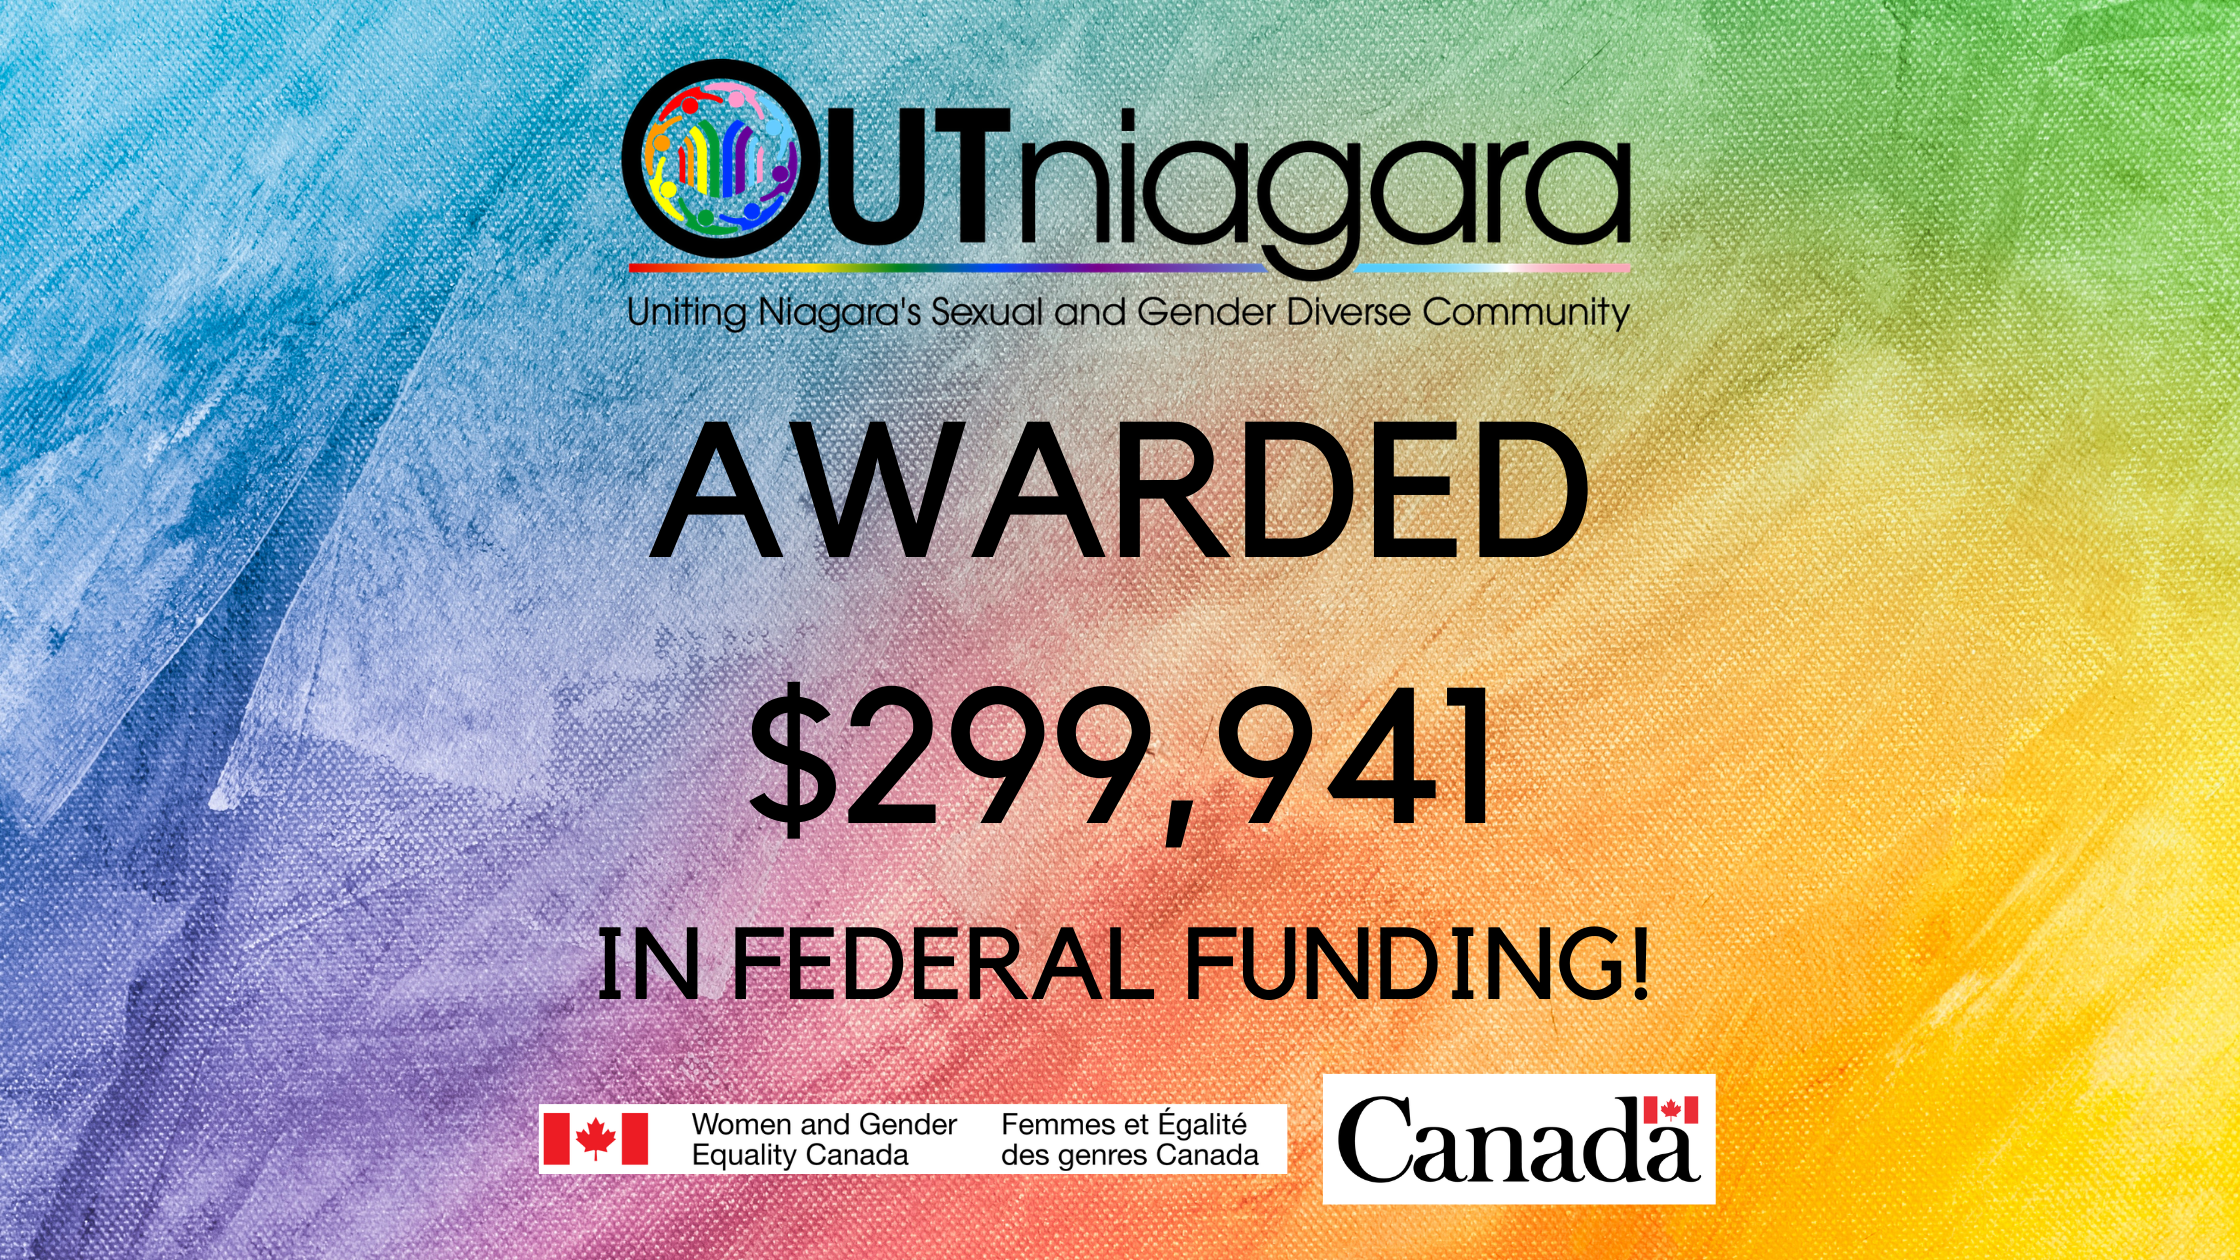 OUTniagara Funding Announcement